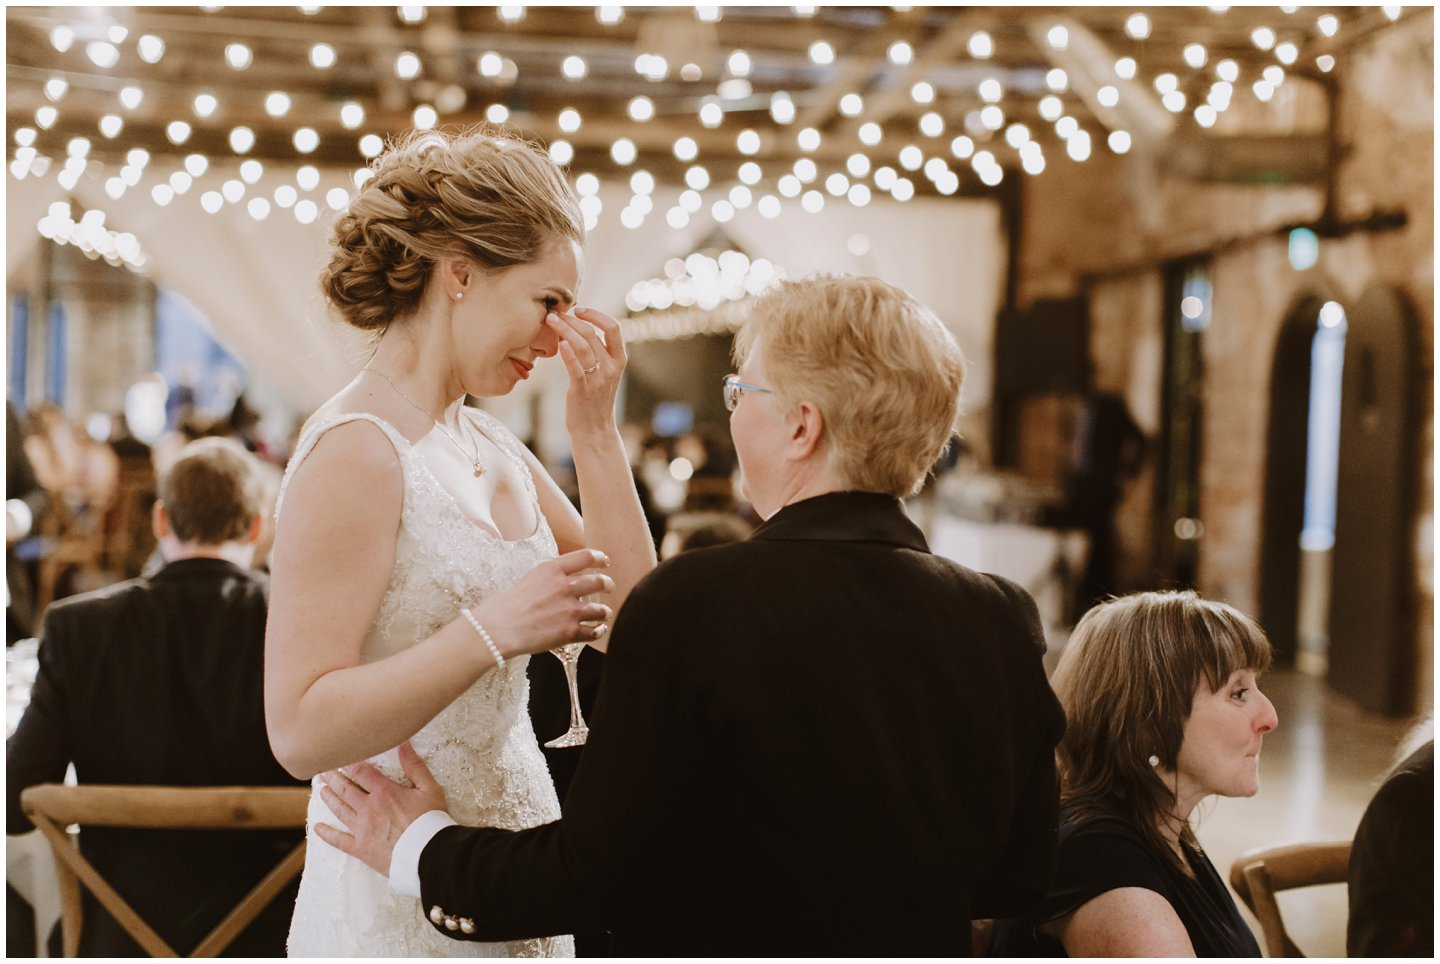 emotional bride at wedding reception